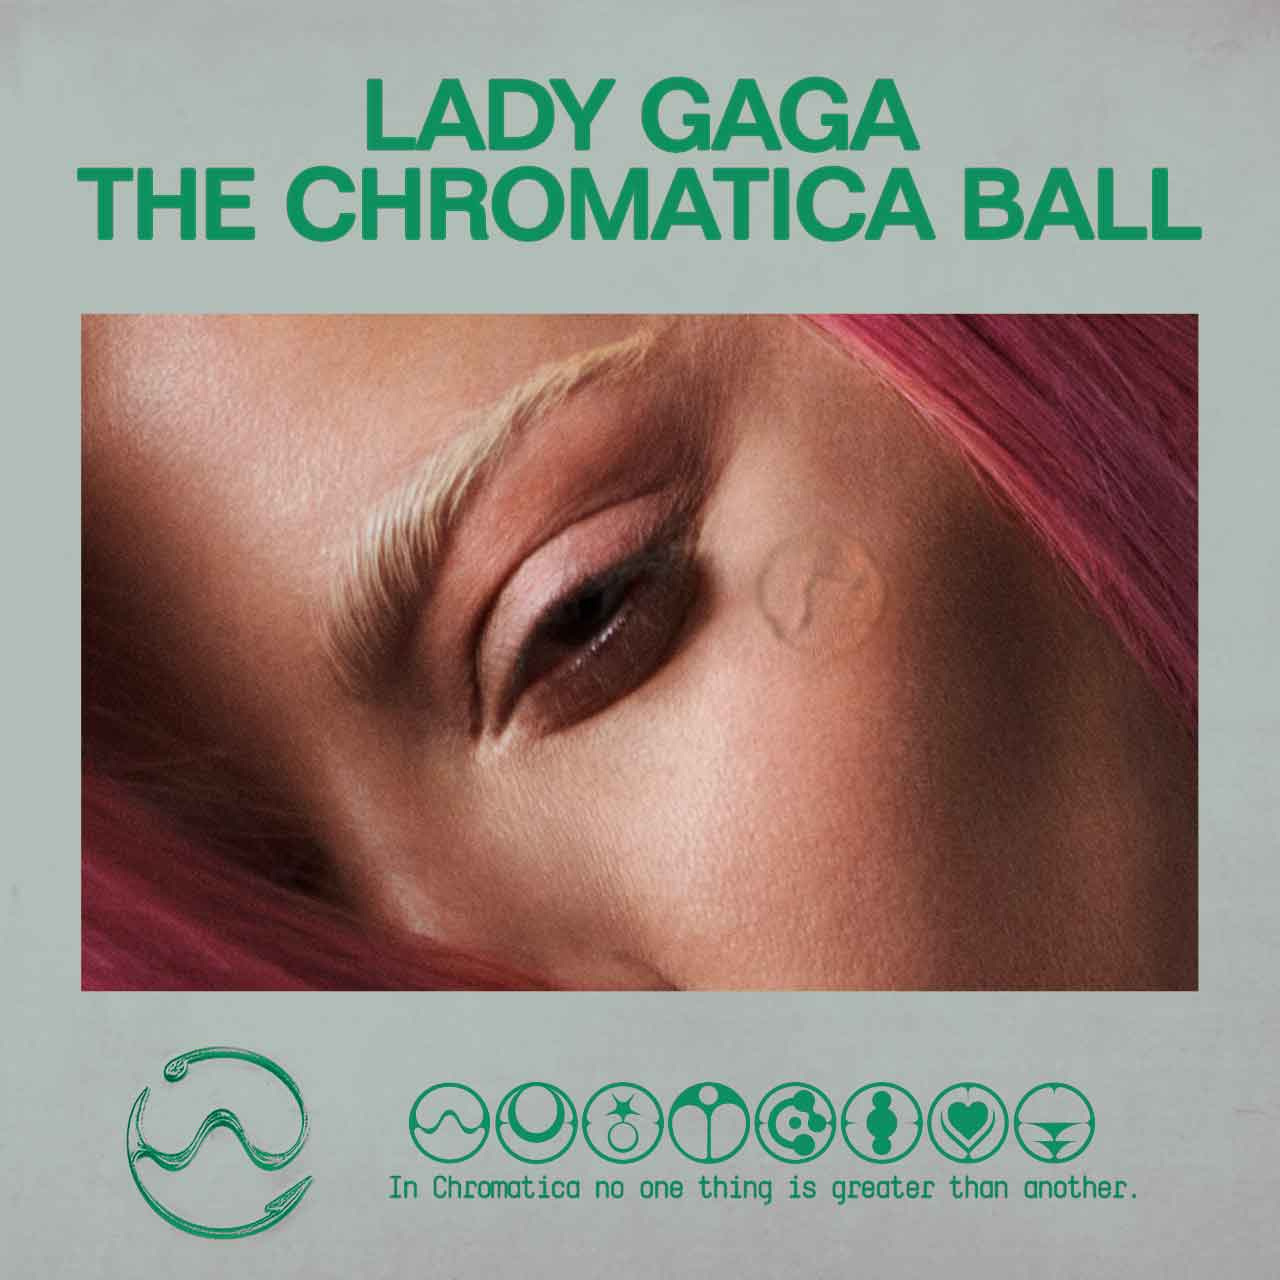 The Chromatica Ball